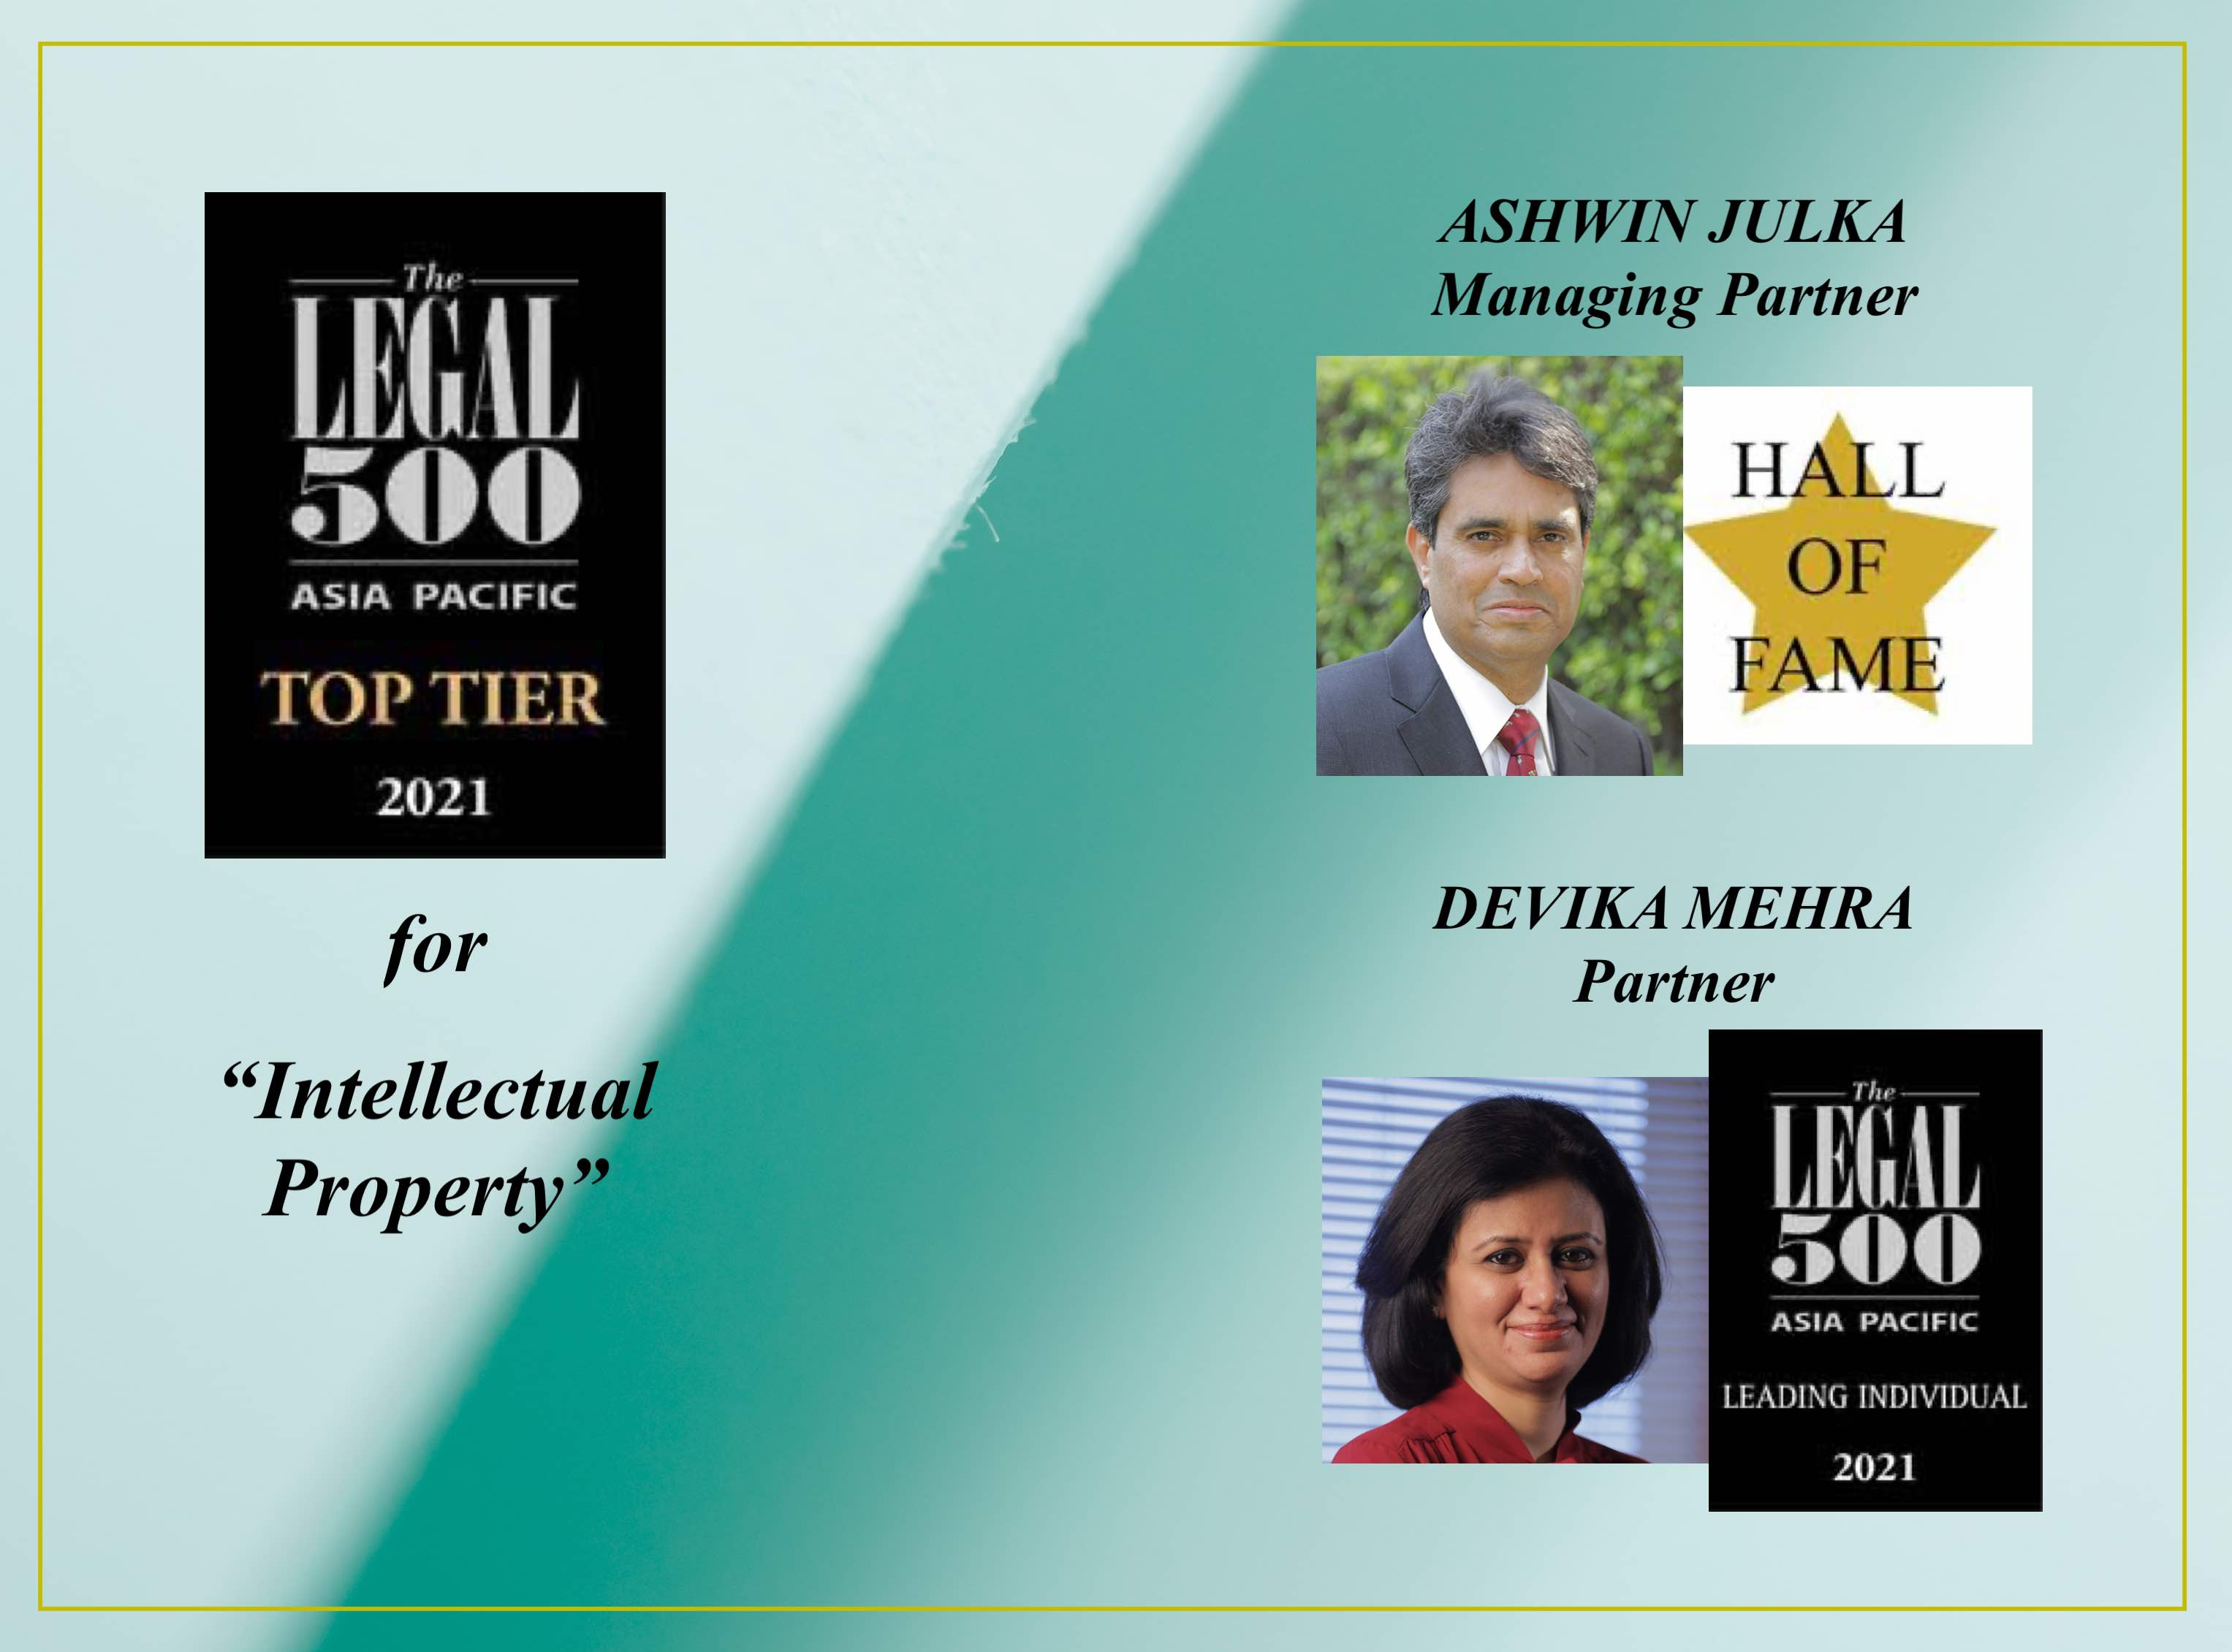 Legal 500 Asia Pacific Rankings 2021